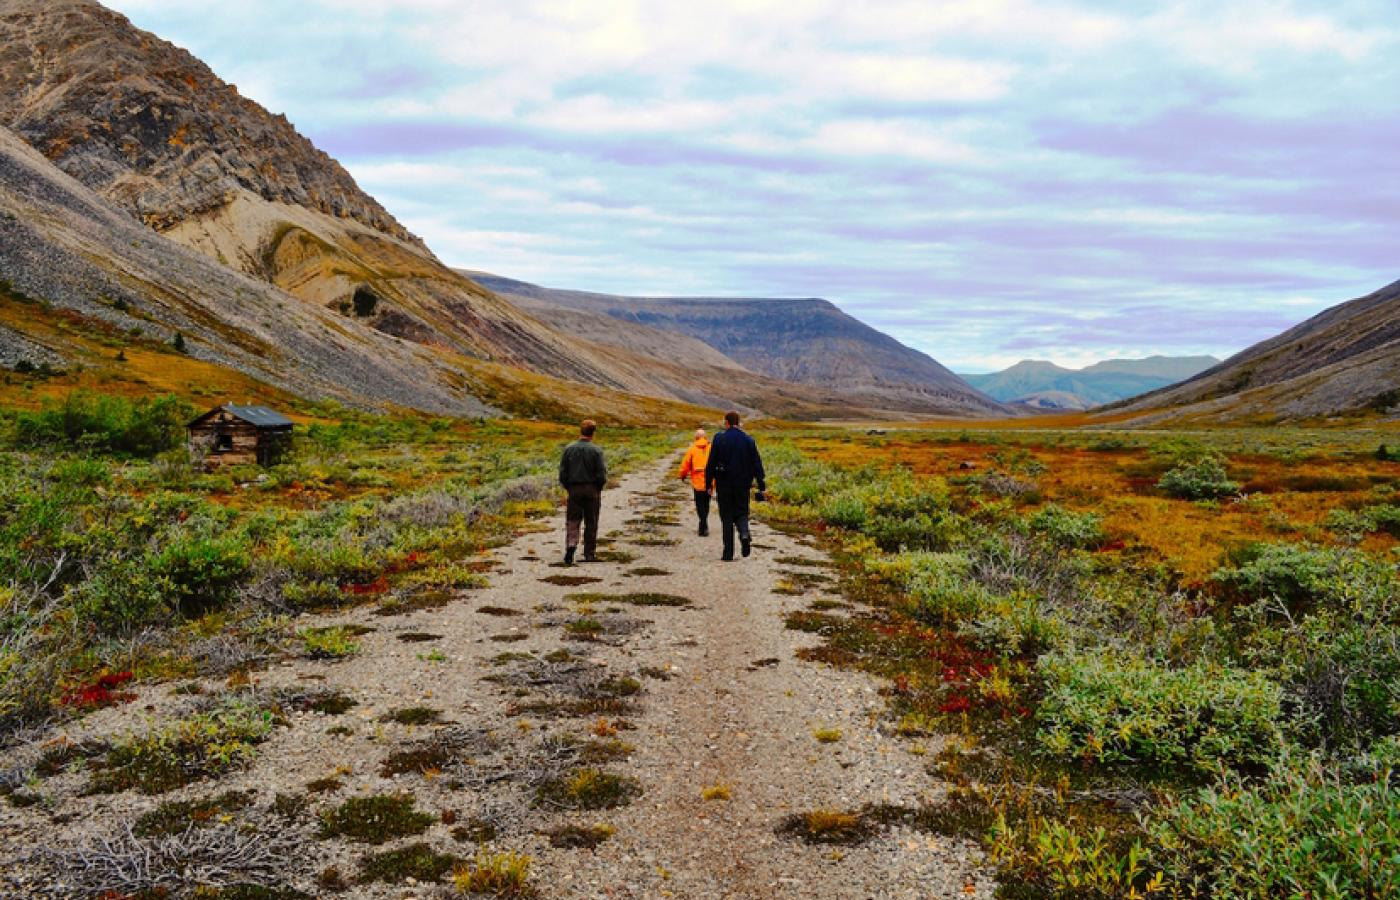 Take a trail into some truly rugged and untamed wilderness on the Canol Trail, in Canada's Northwest Territories